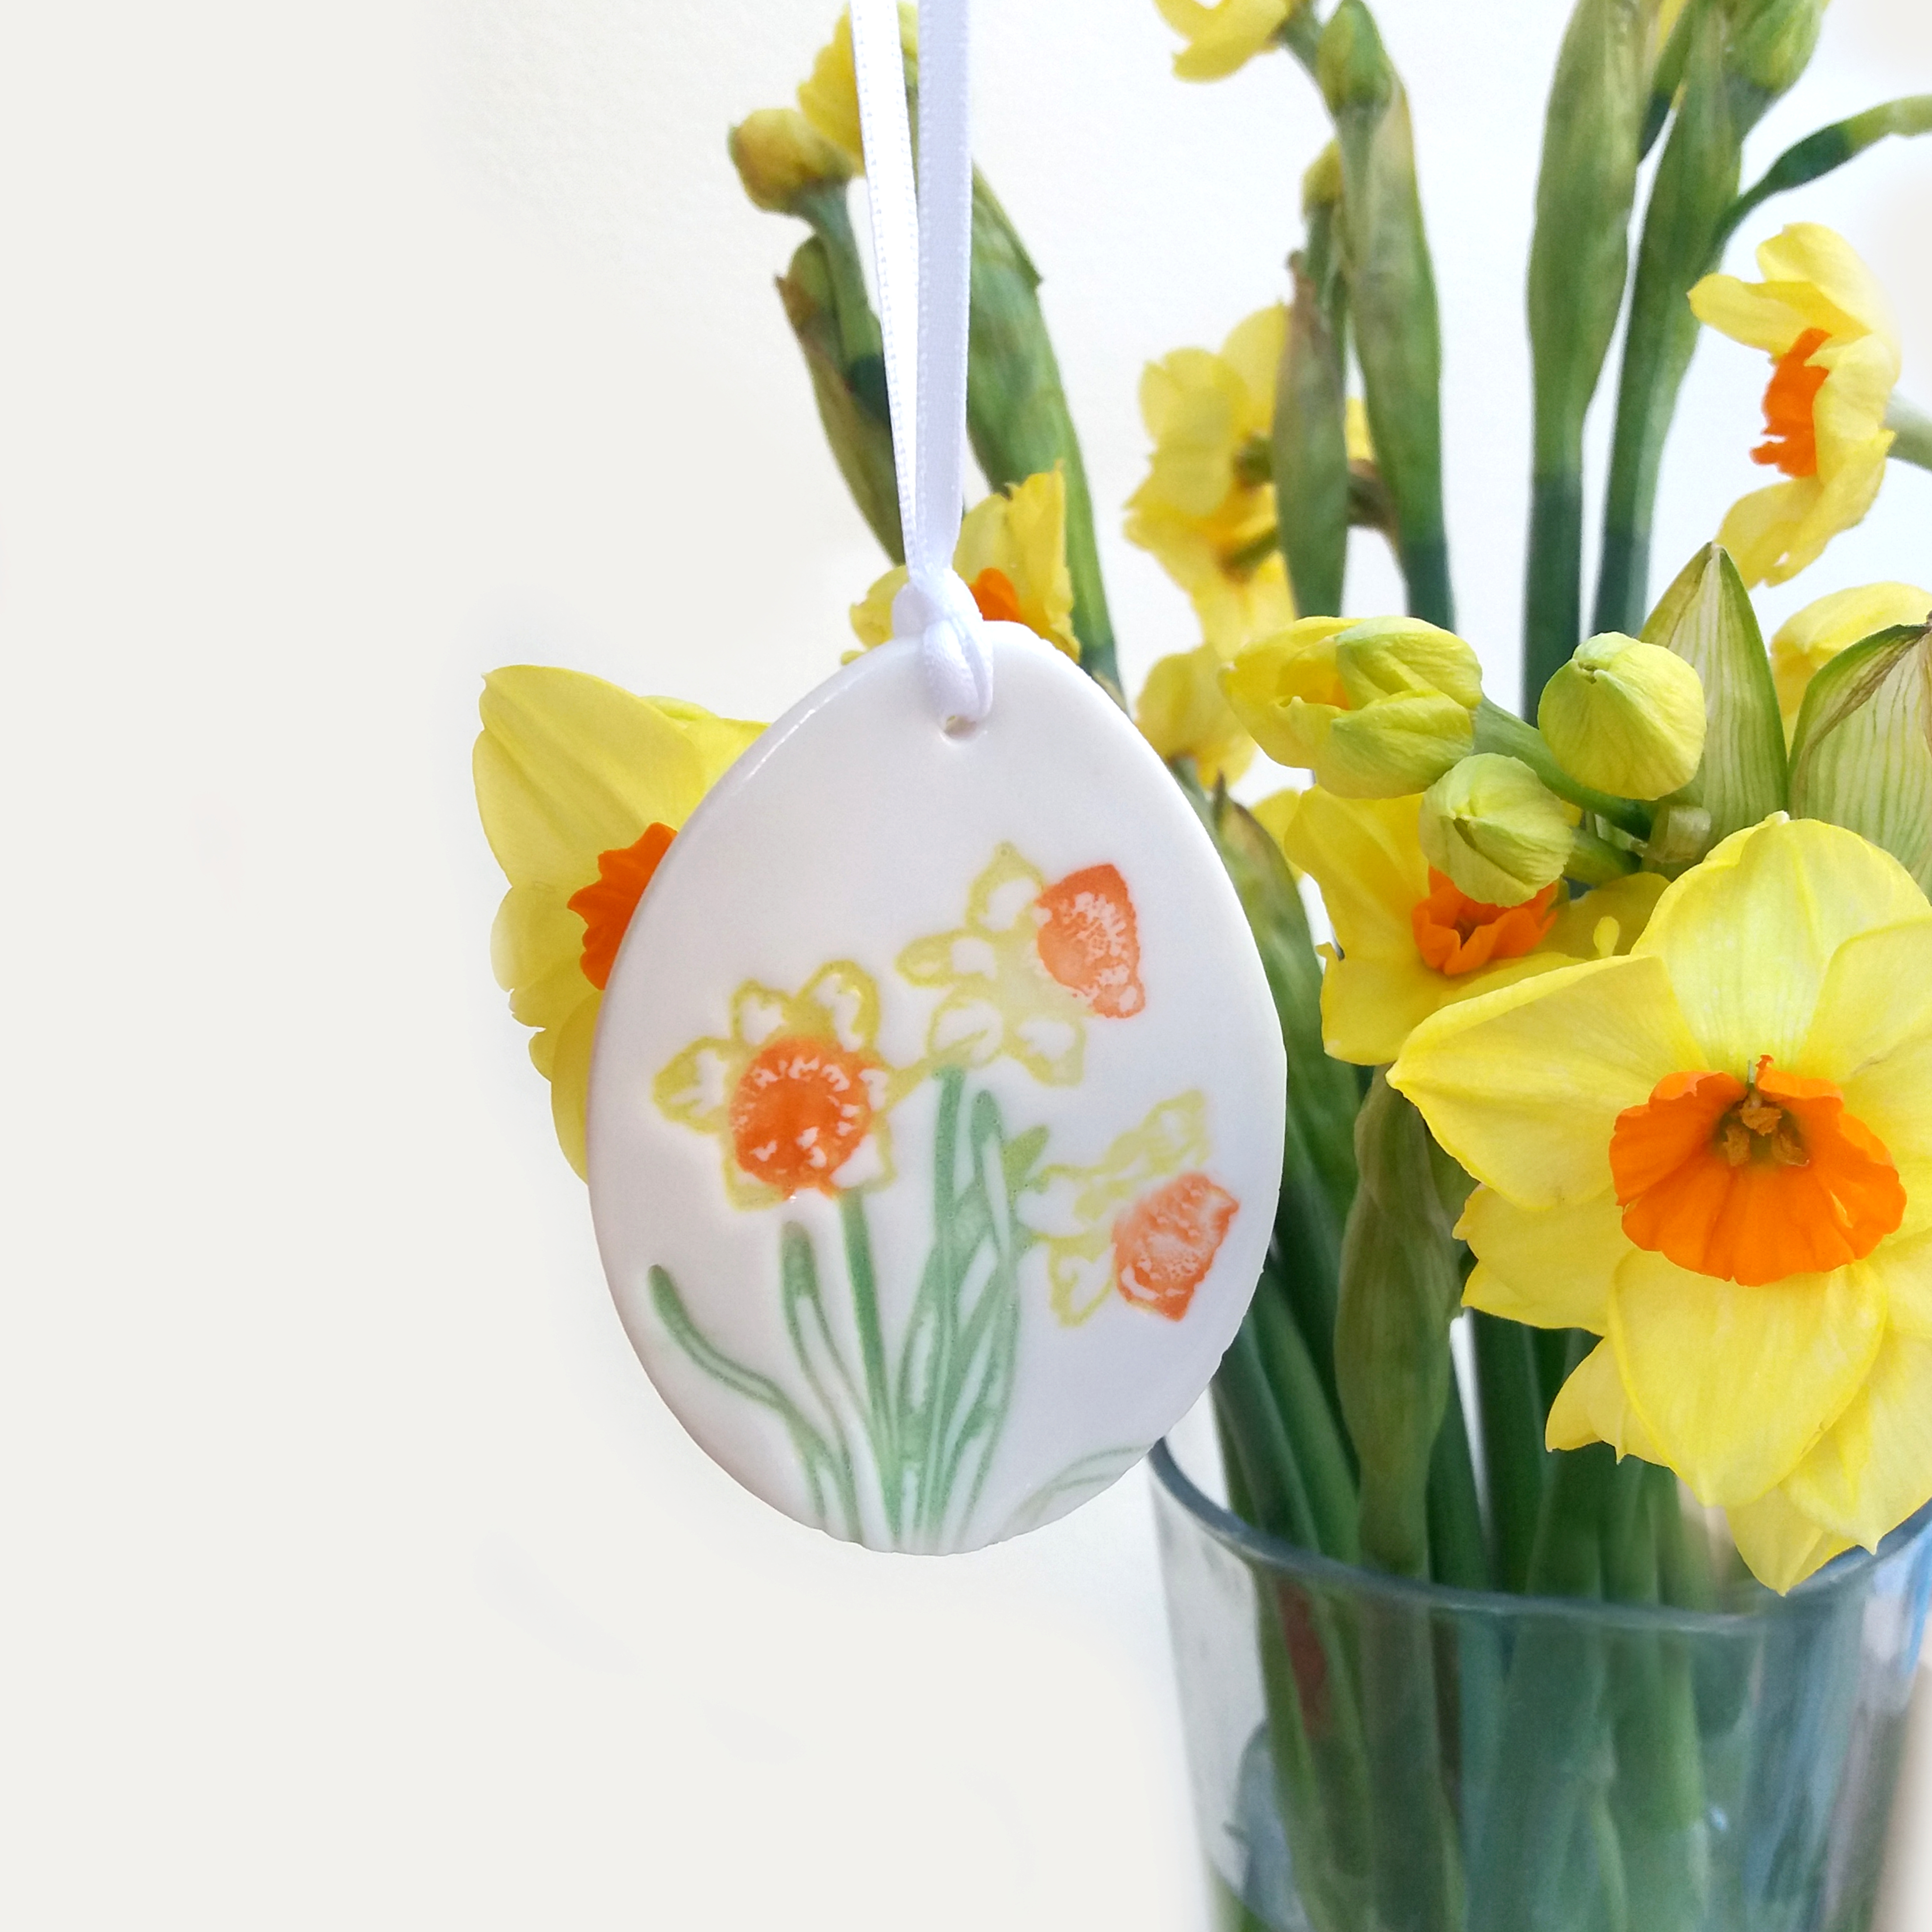 decoration ideas creative and tips easter decoholic decorating decor